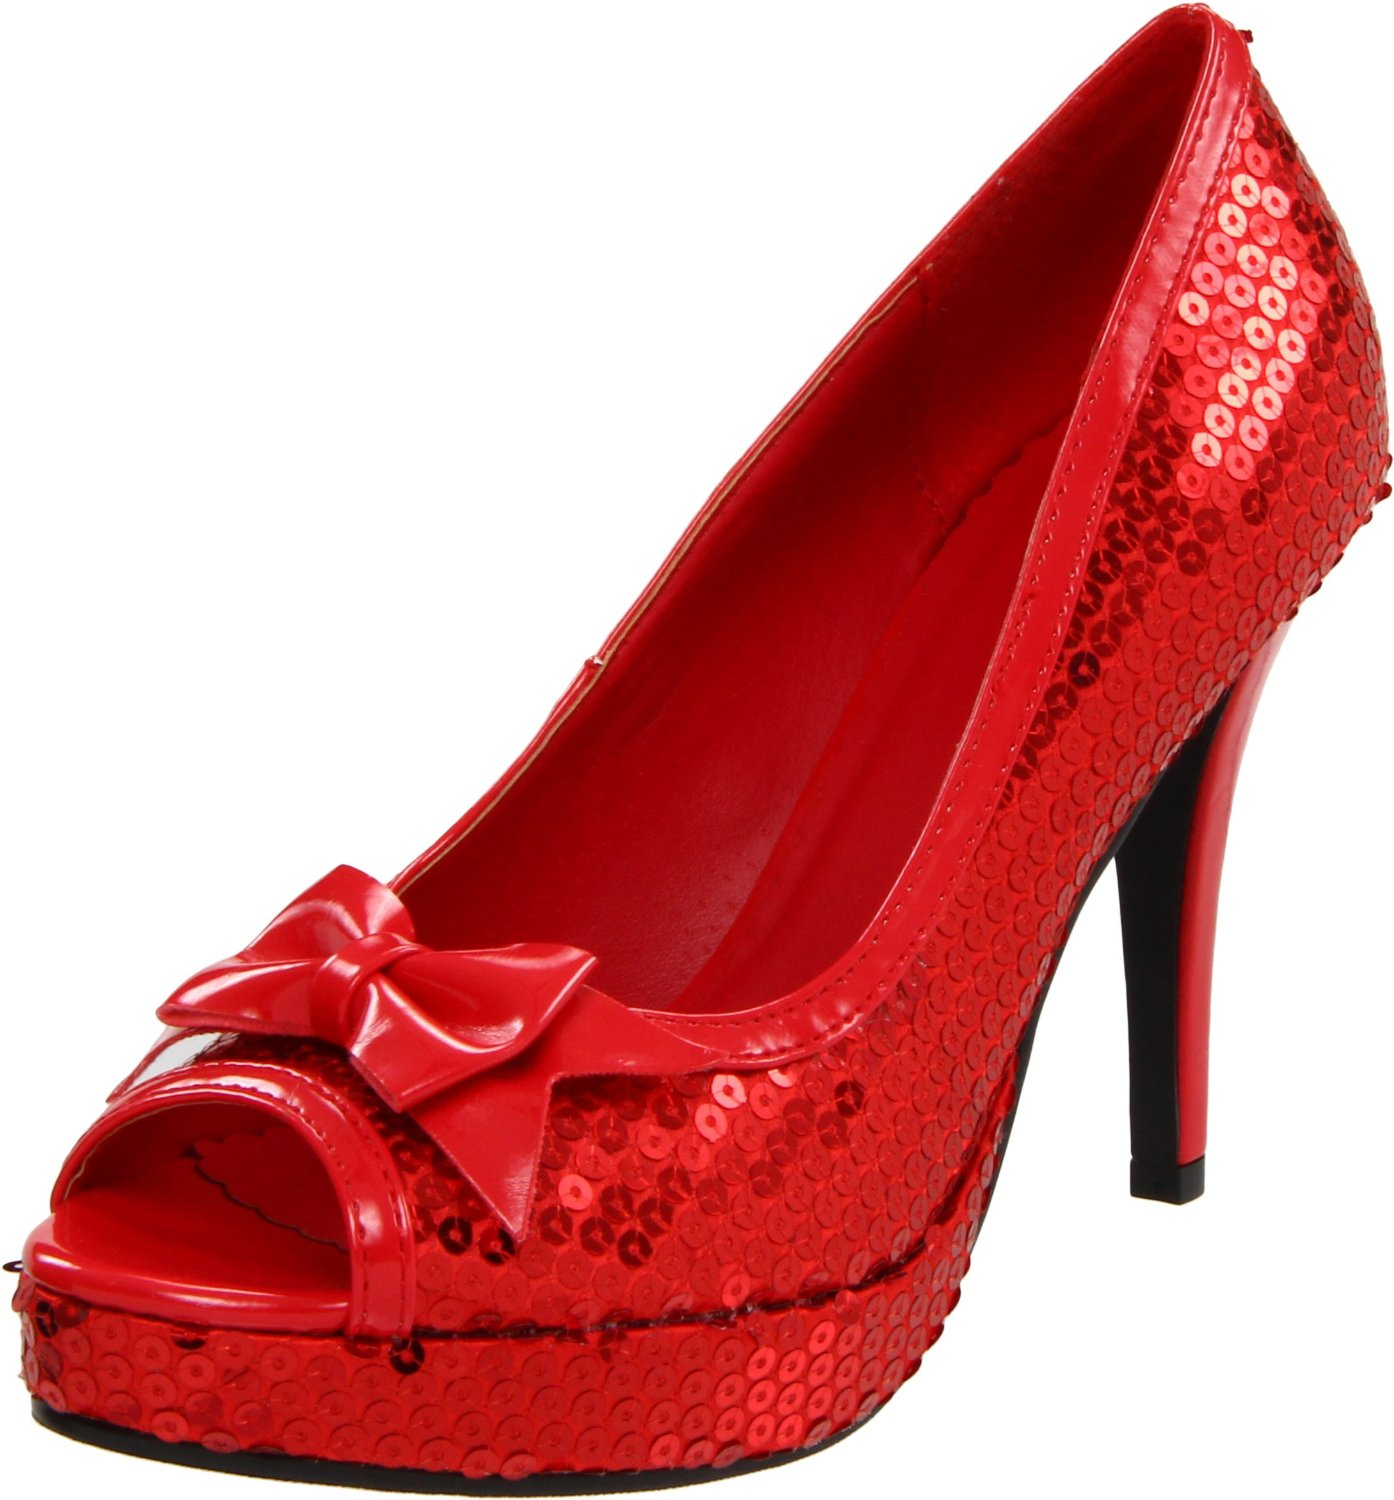 Prom Dresses 2018: Red glitter shoes 2018 & 2019